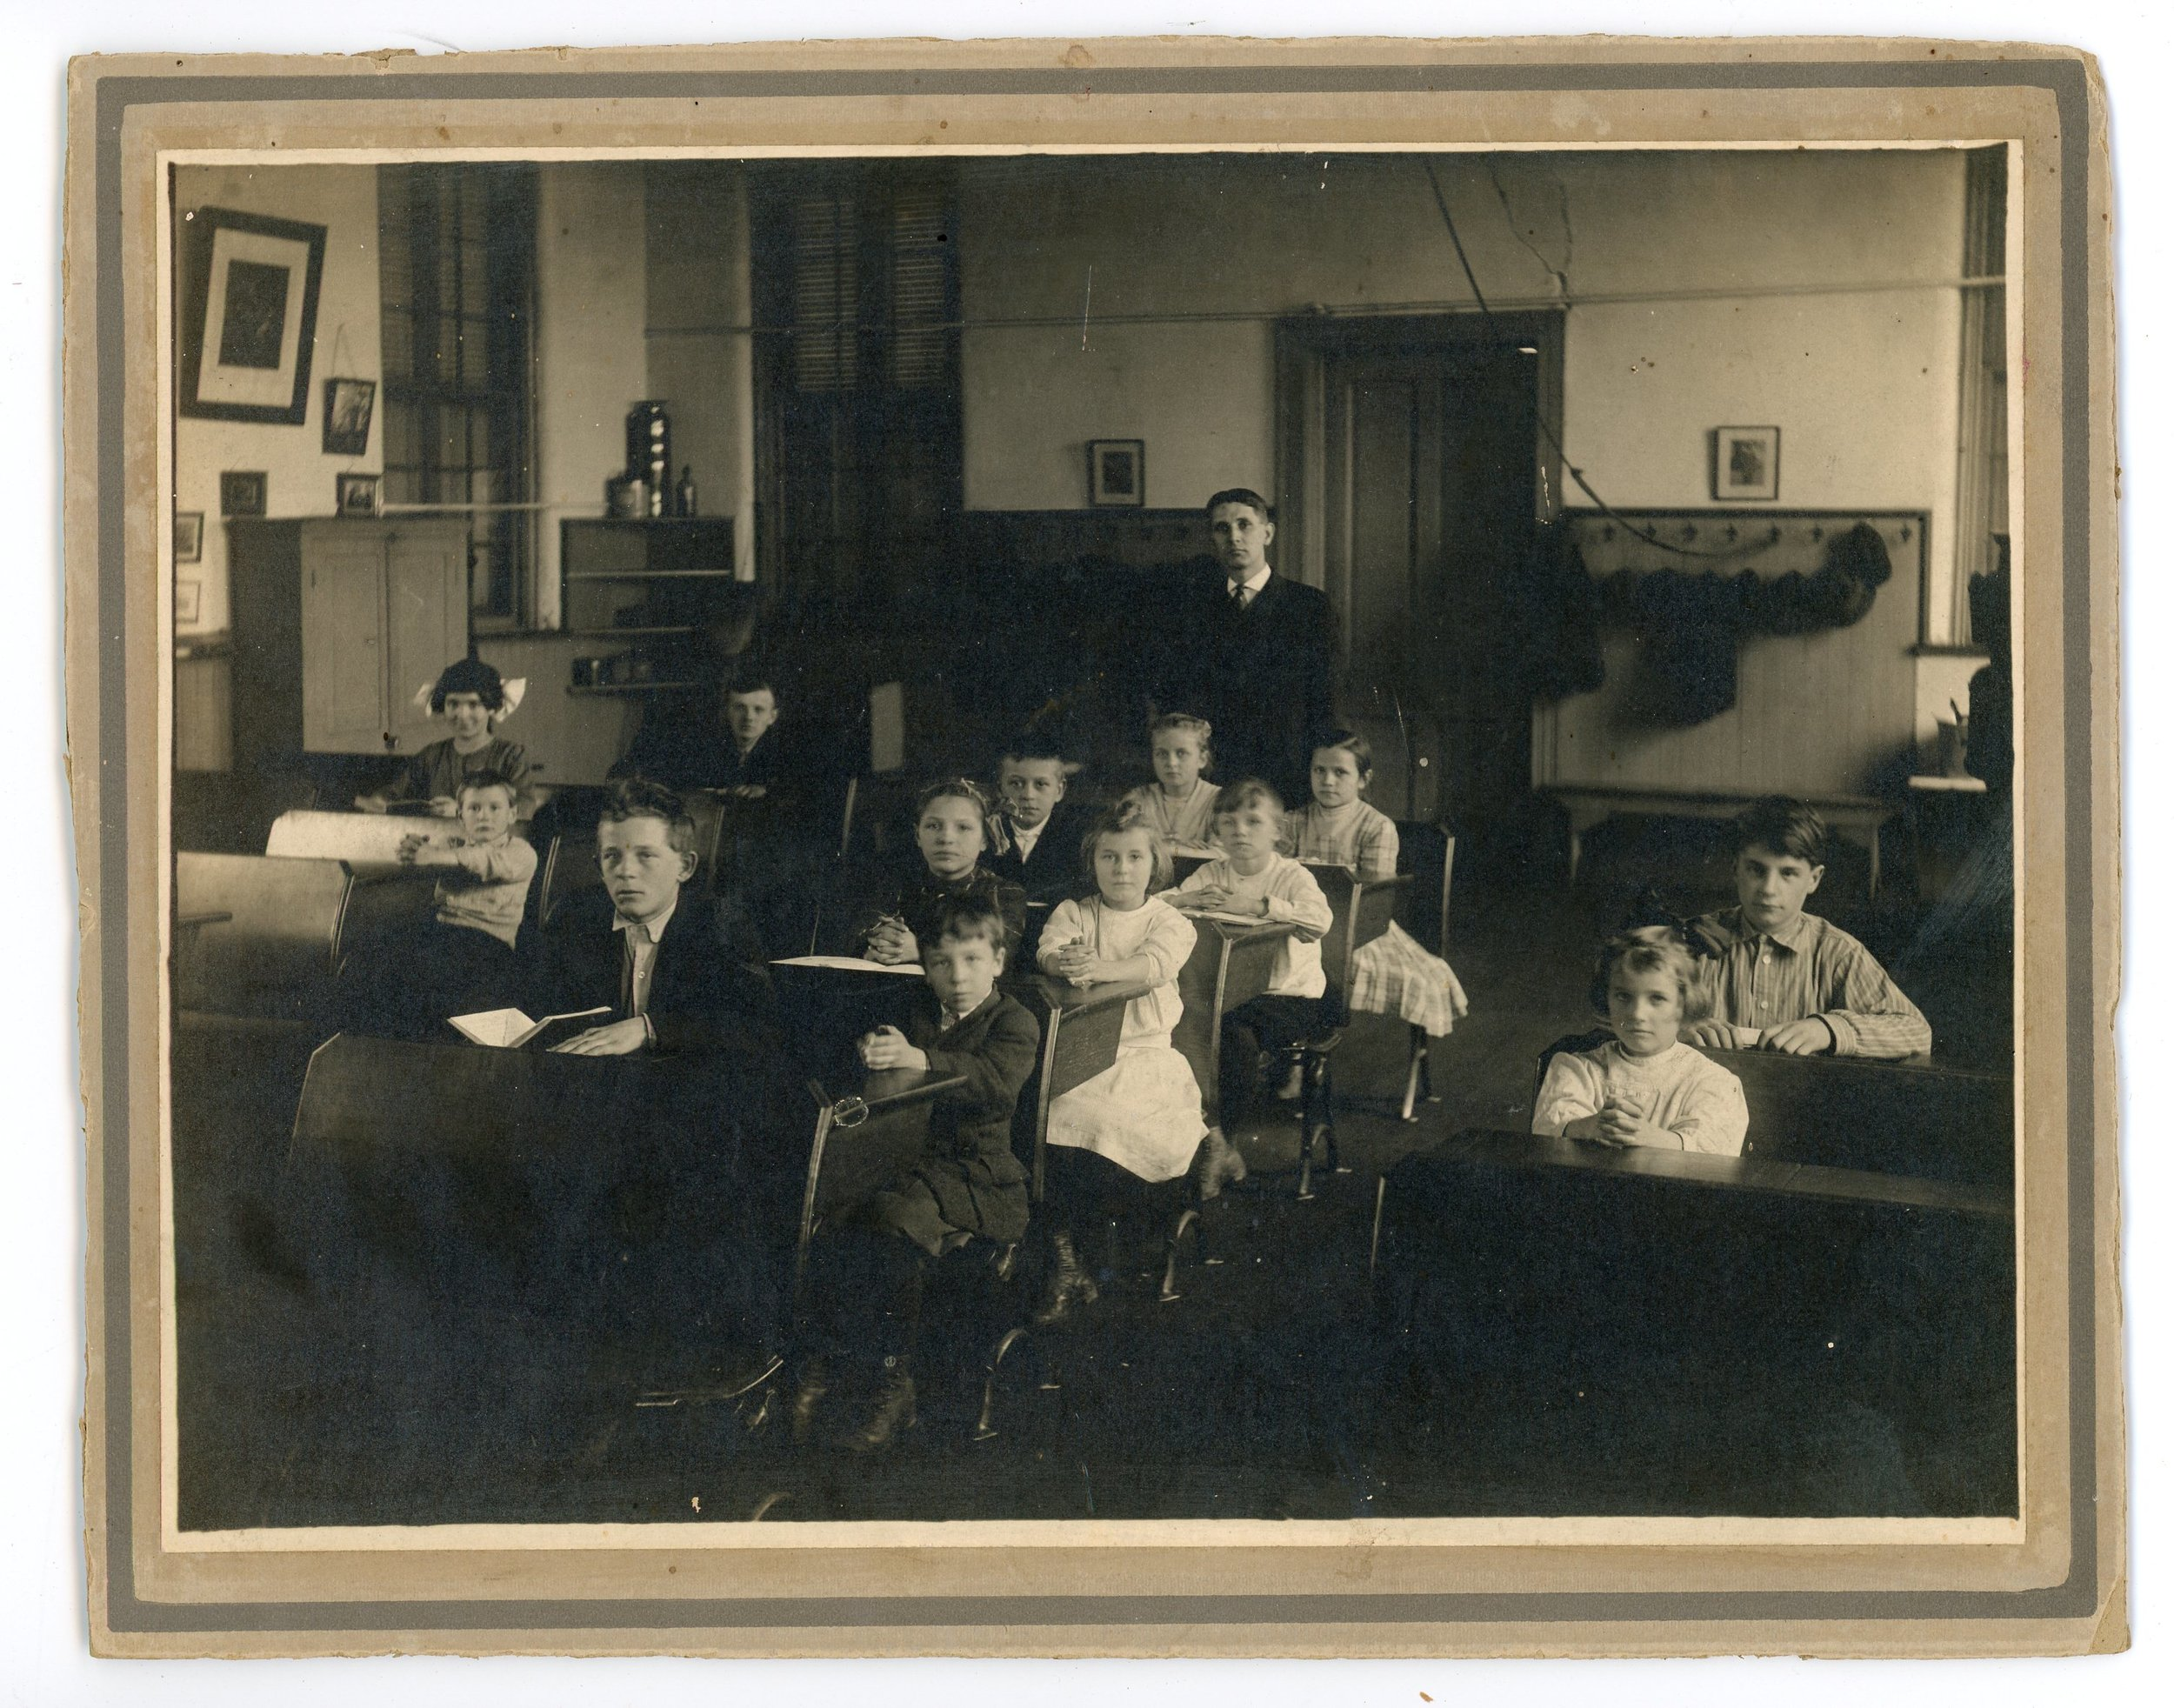 Teacher and students, date unknown.All rights reserved: Delhi Historical Society